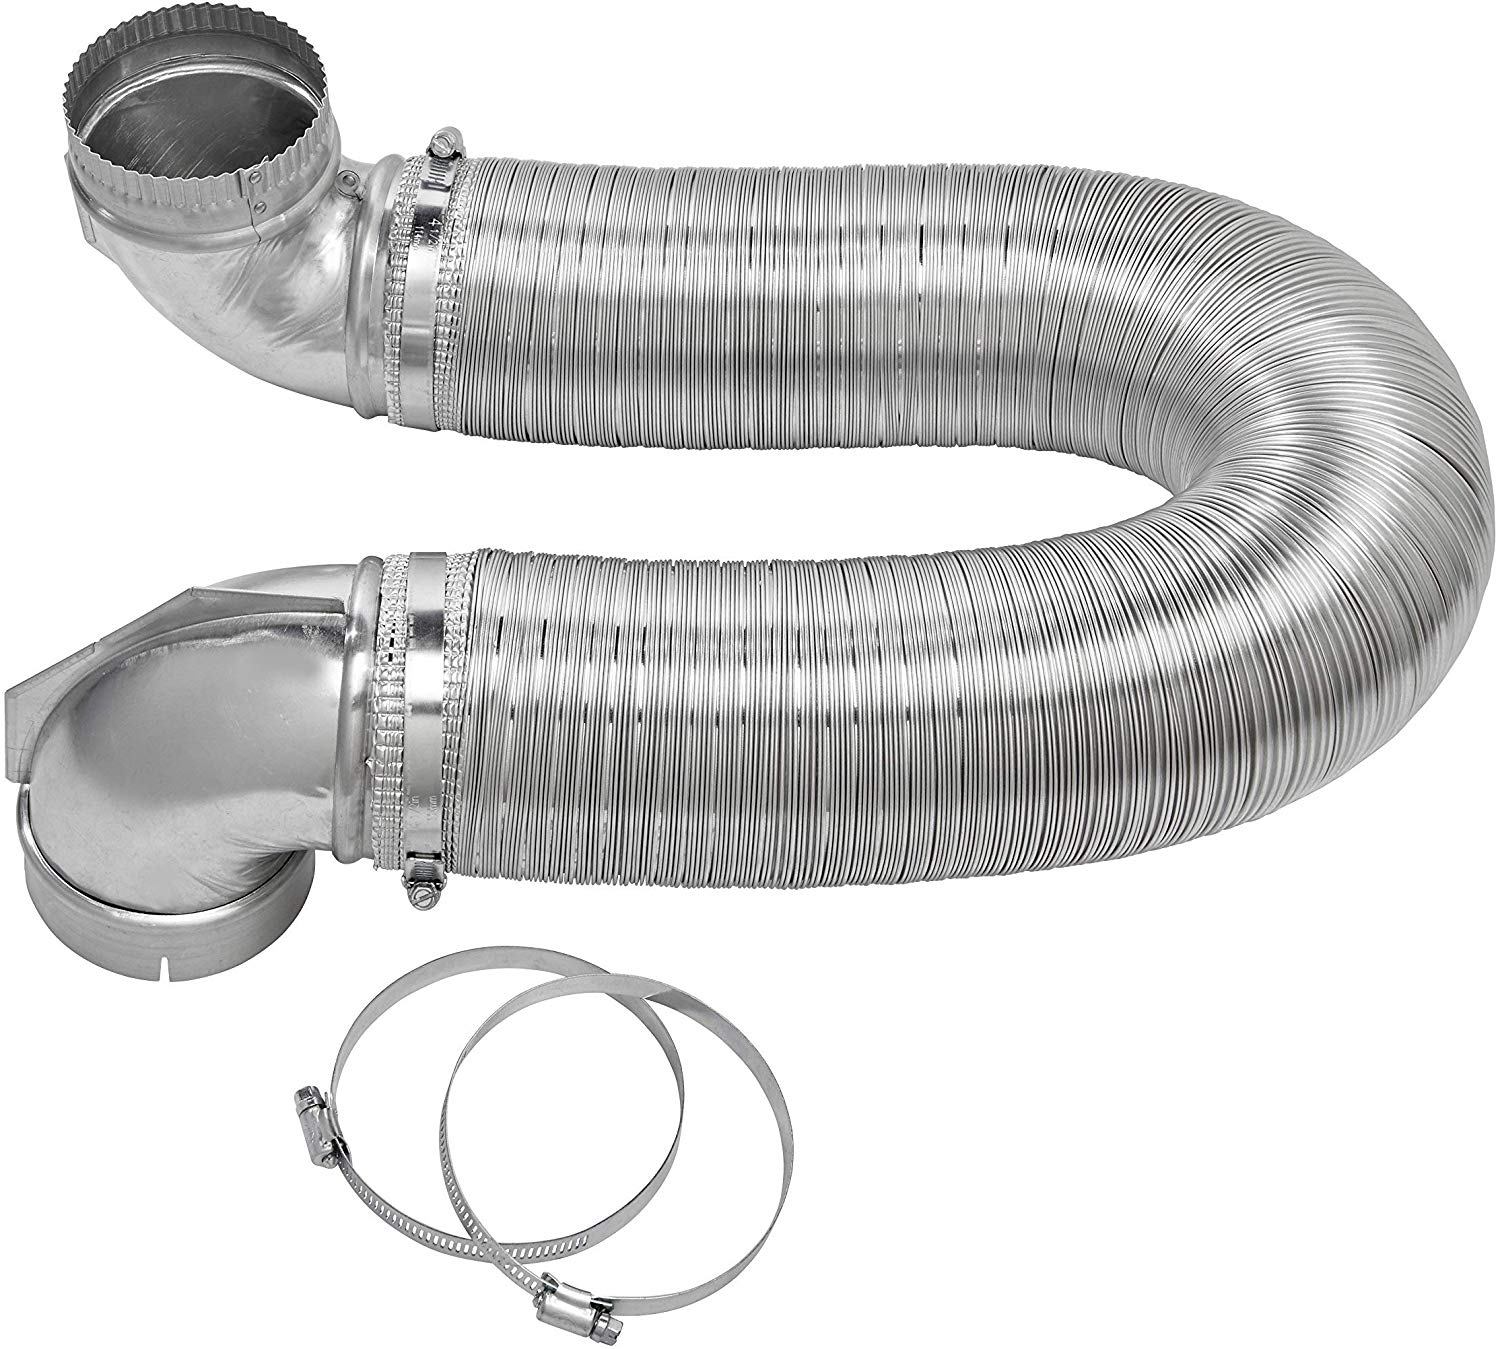 Lambro Industries, Dryer Vent Kit